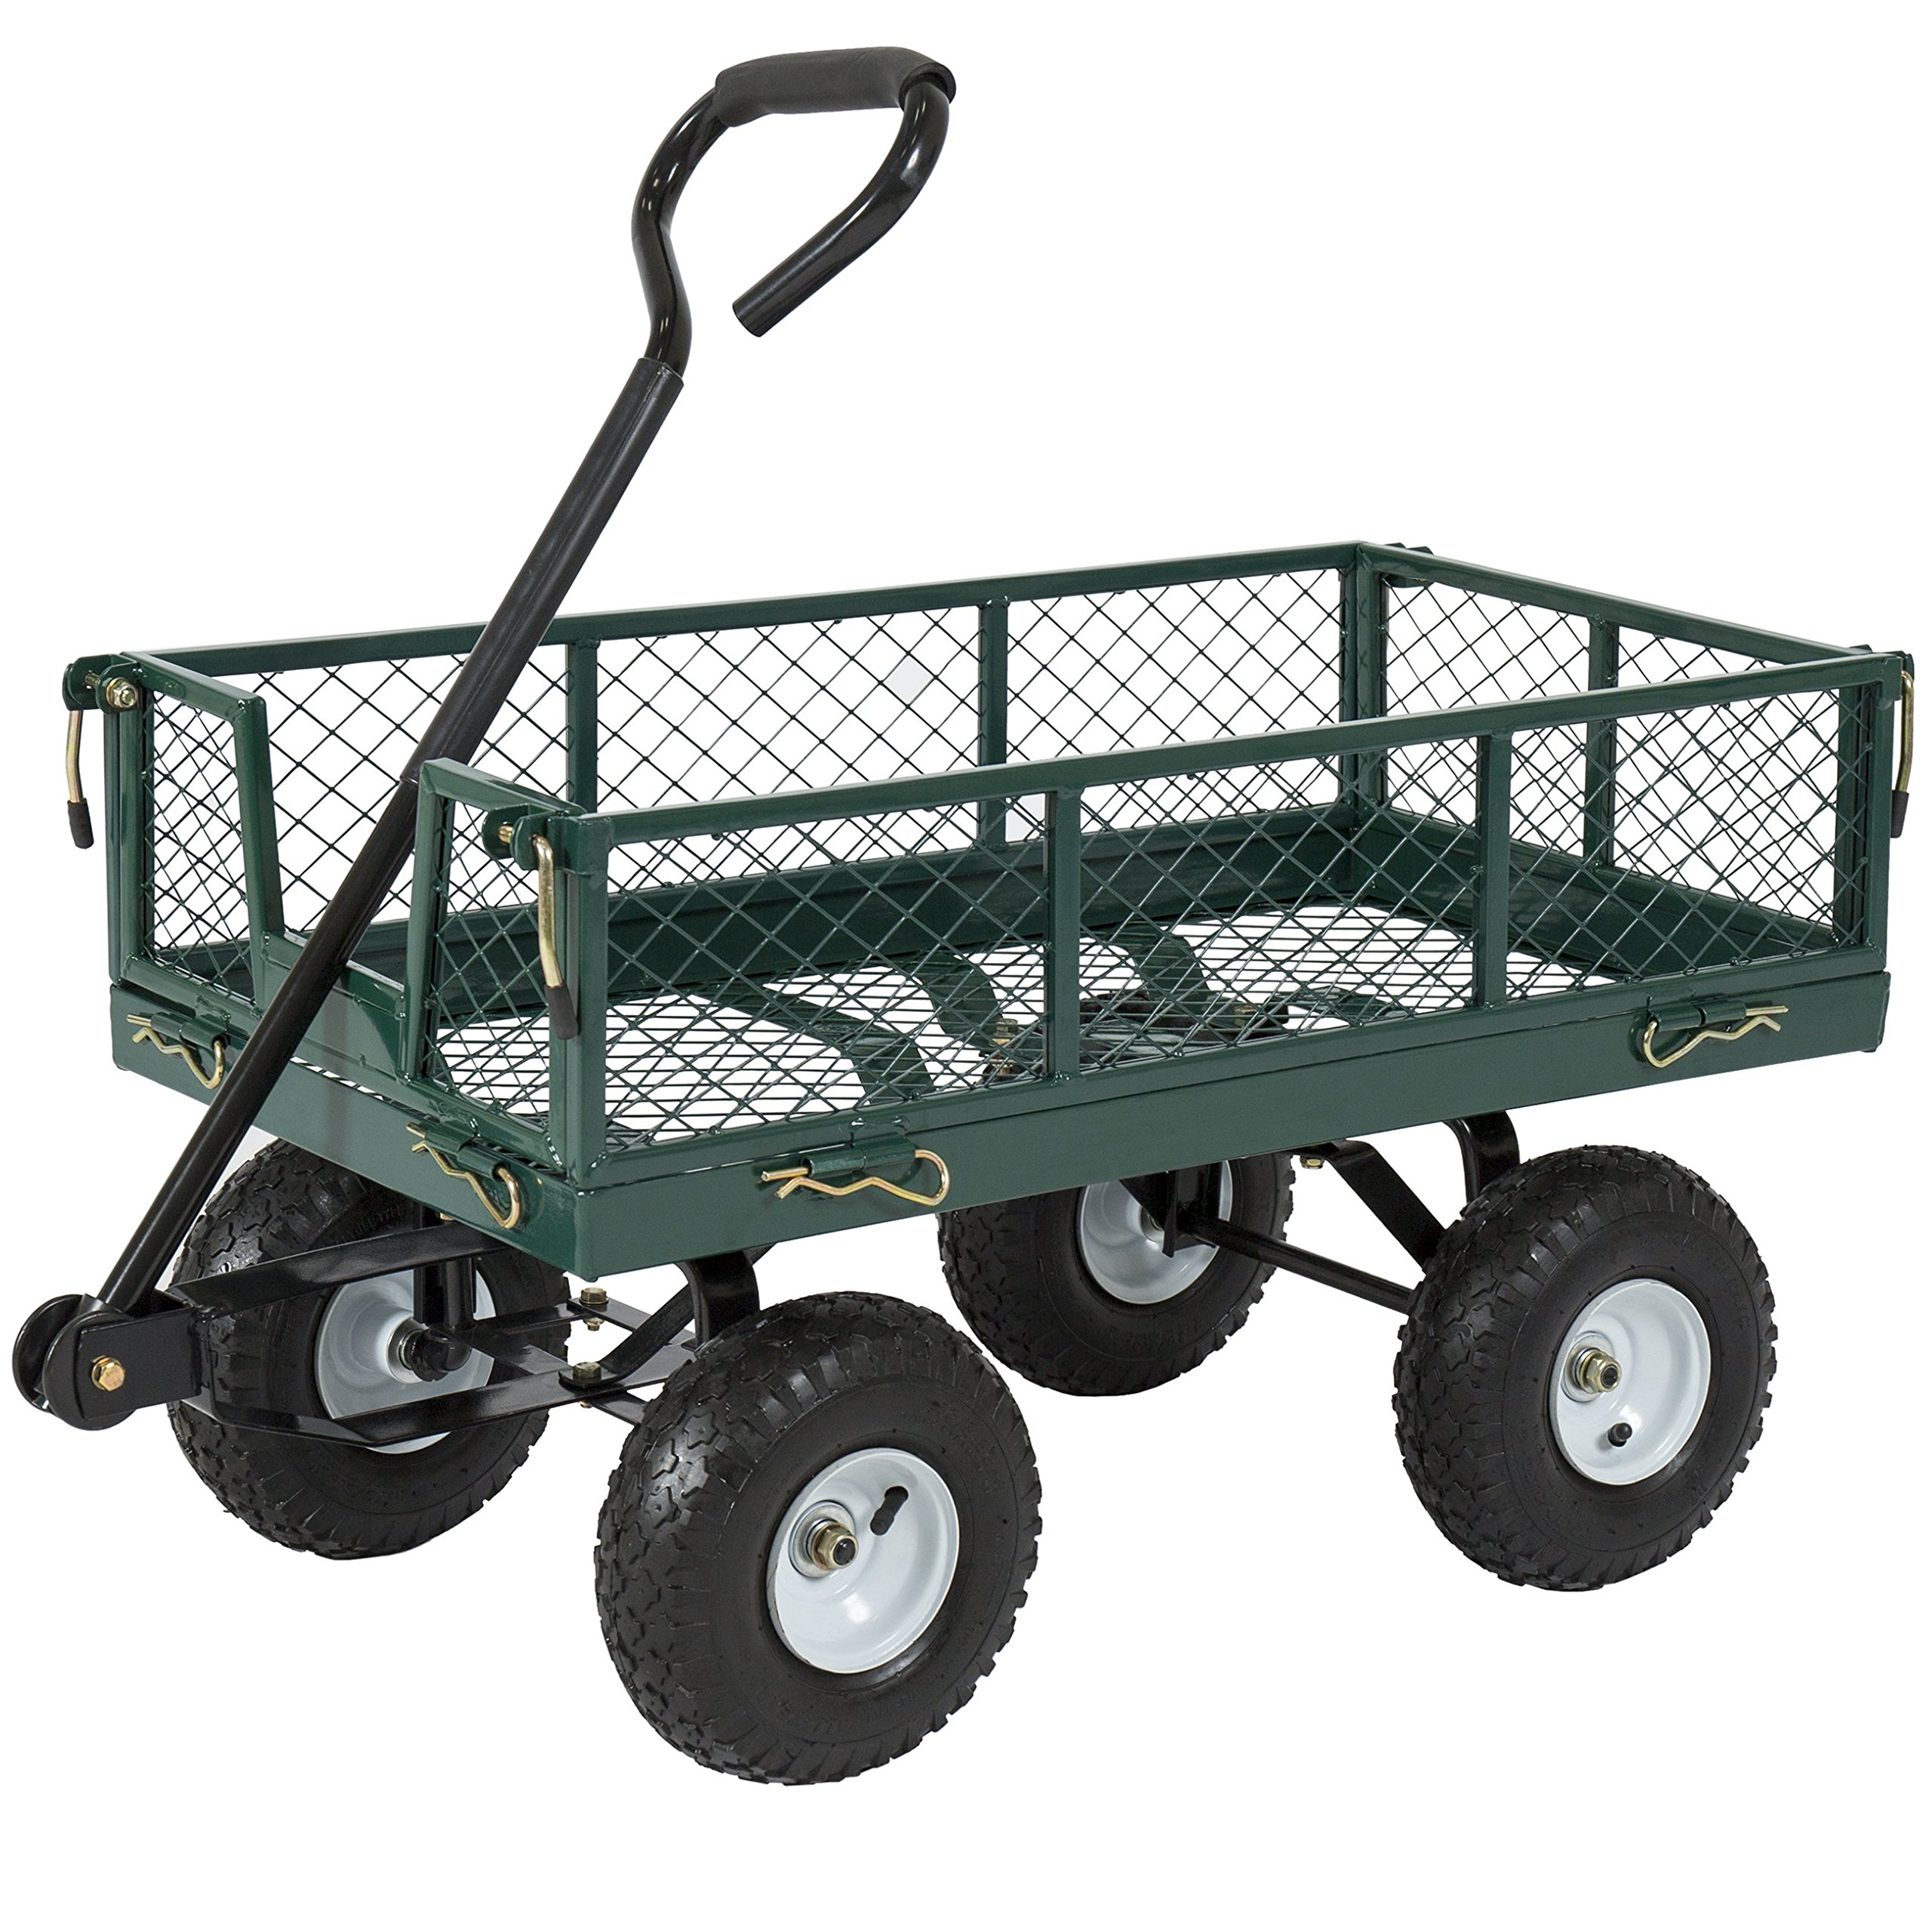 Best Choice Products Utility Cart Wagon Lawn Wheelbarrow Steel Trailer 660lbs by Best Choice Products